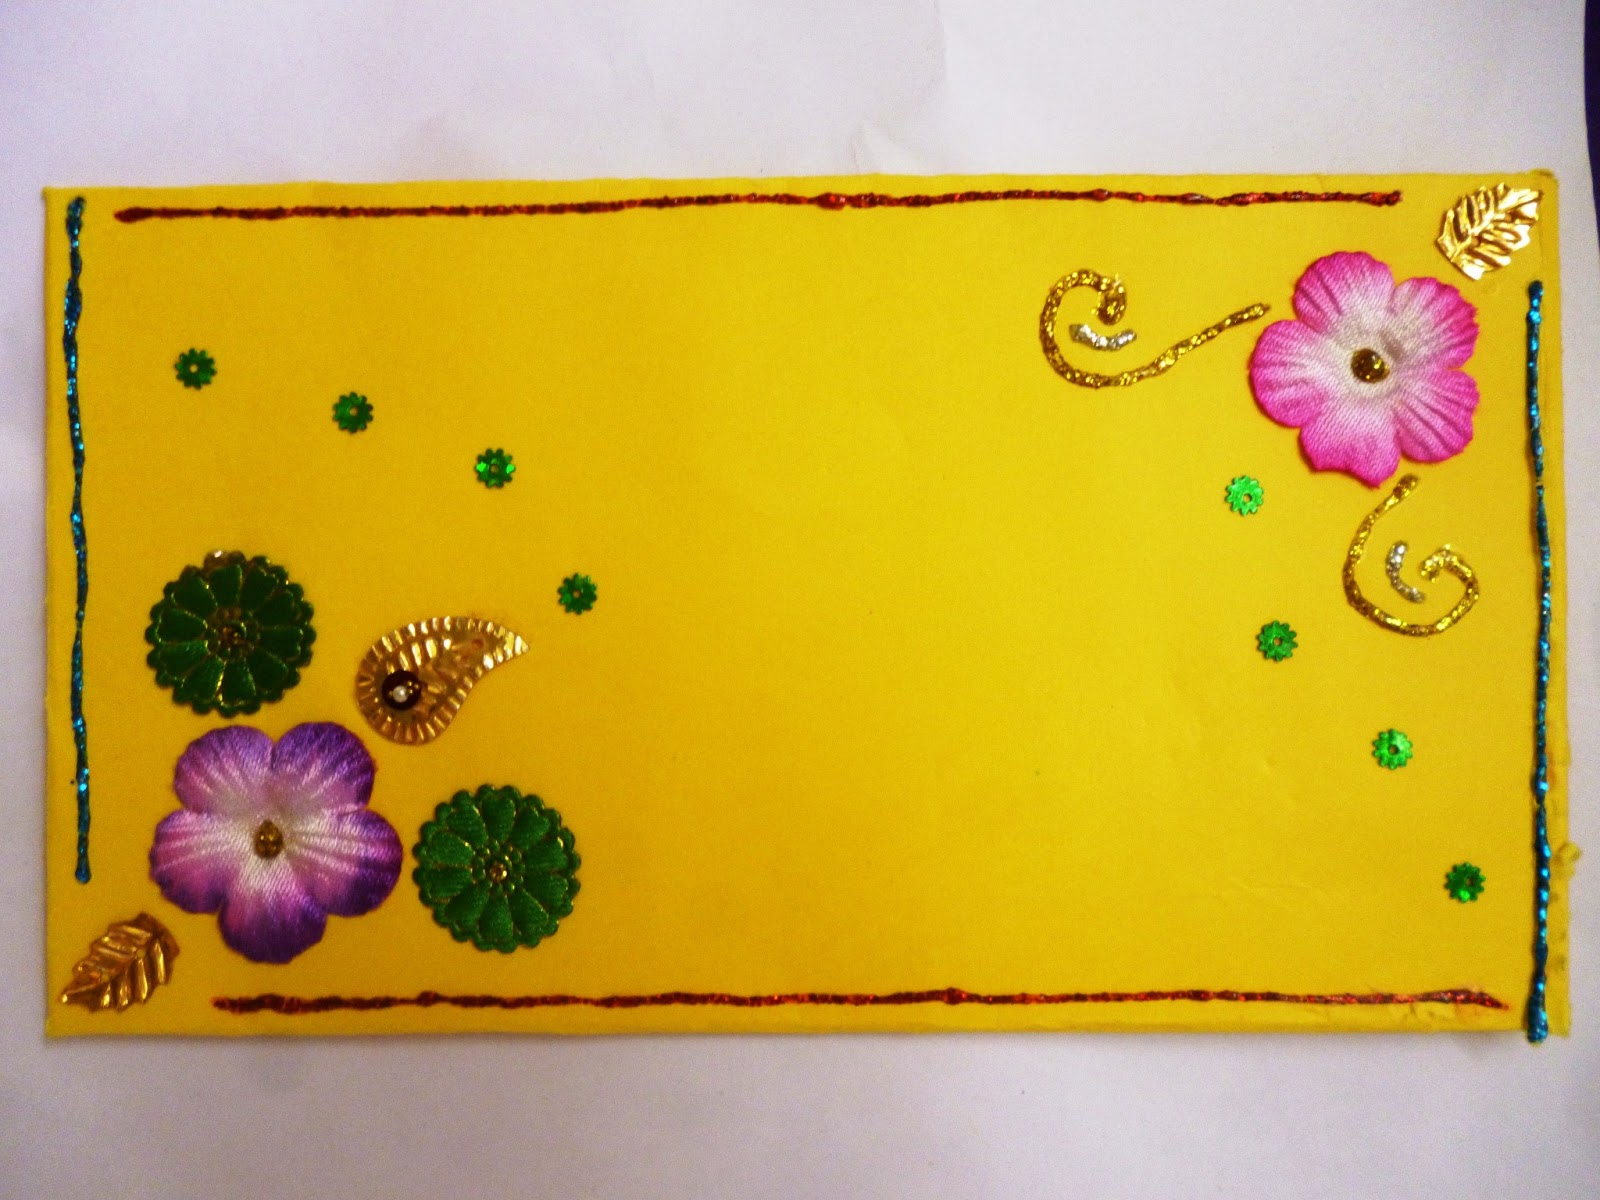 decorative gift envelopes - Decorative Envelopes